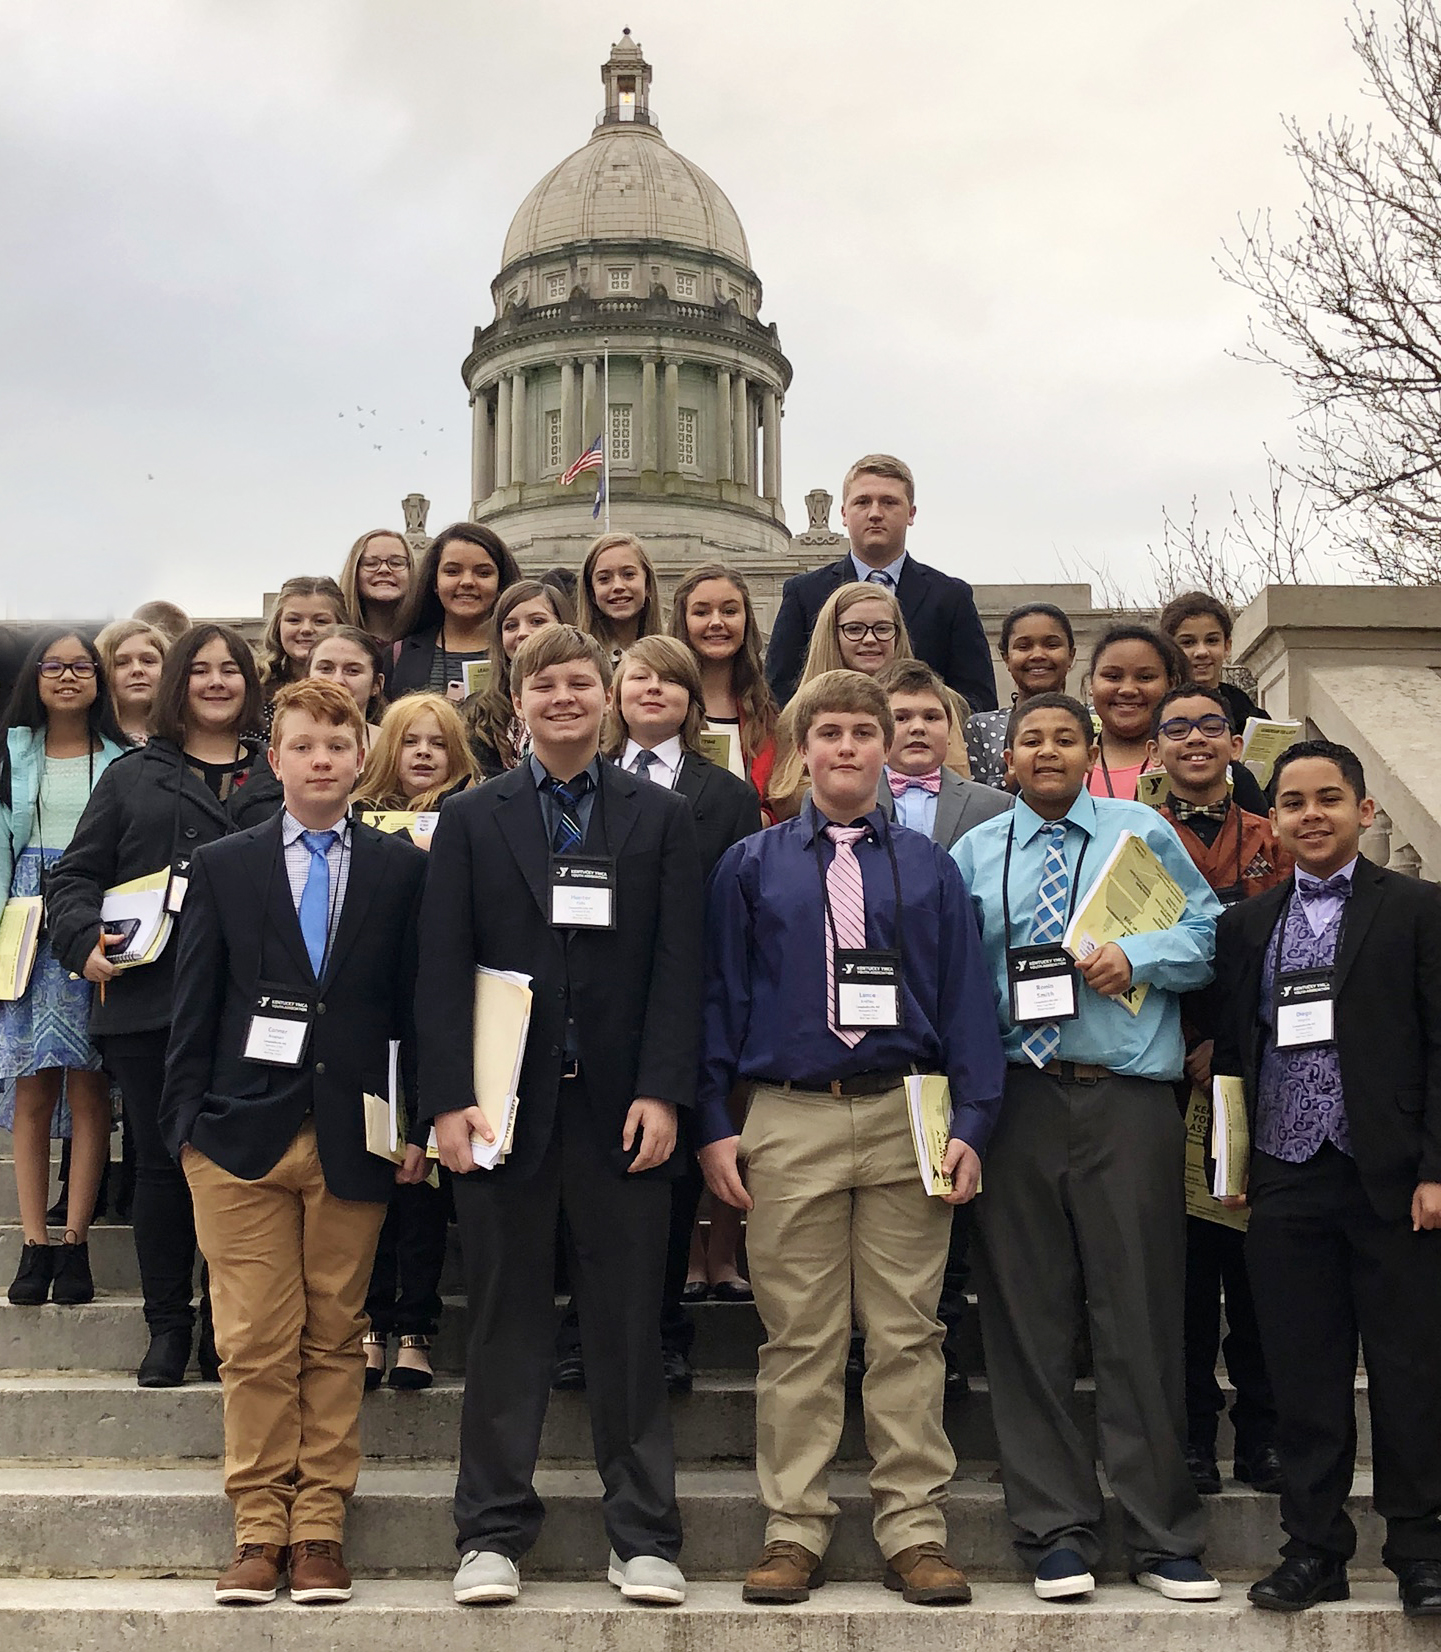 Campbellsville Middle School students were honored with several awards at the Kentucky Youth Assembly session on Dec. 3 and 4.